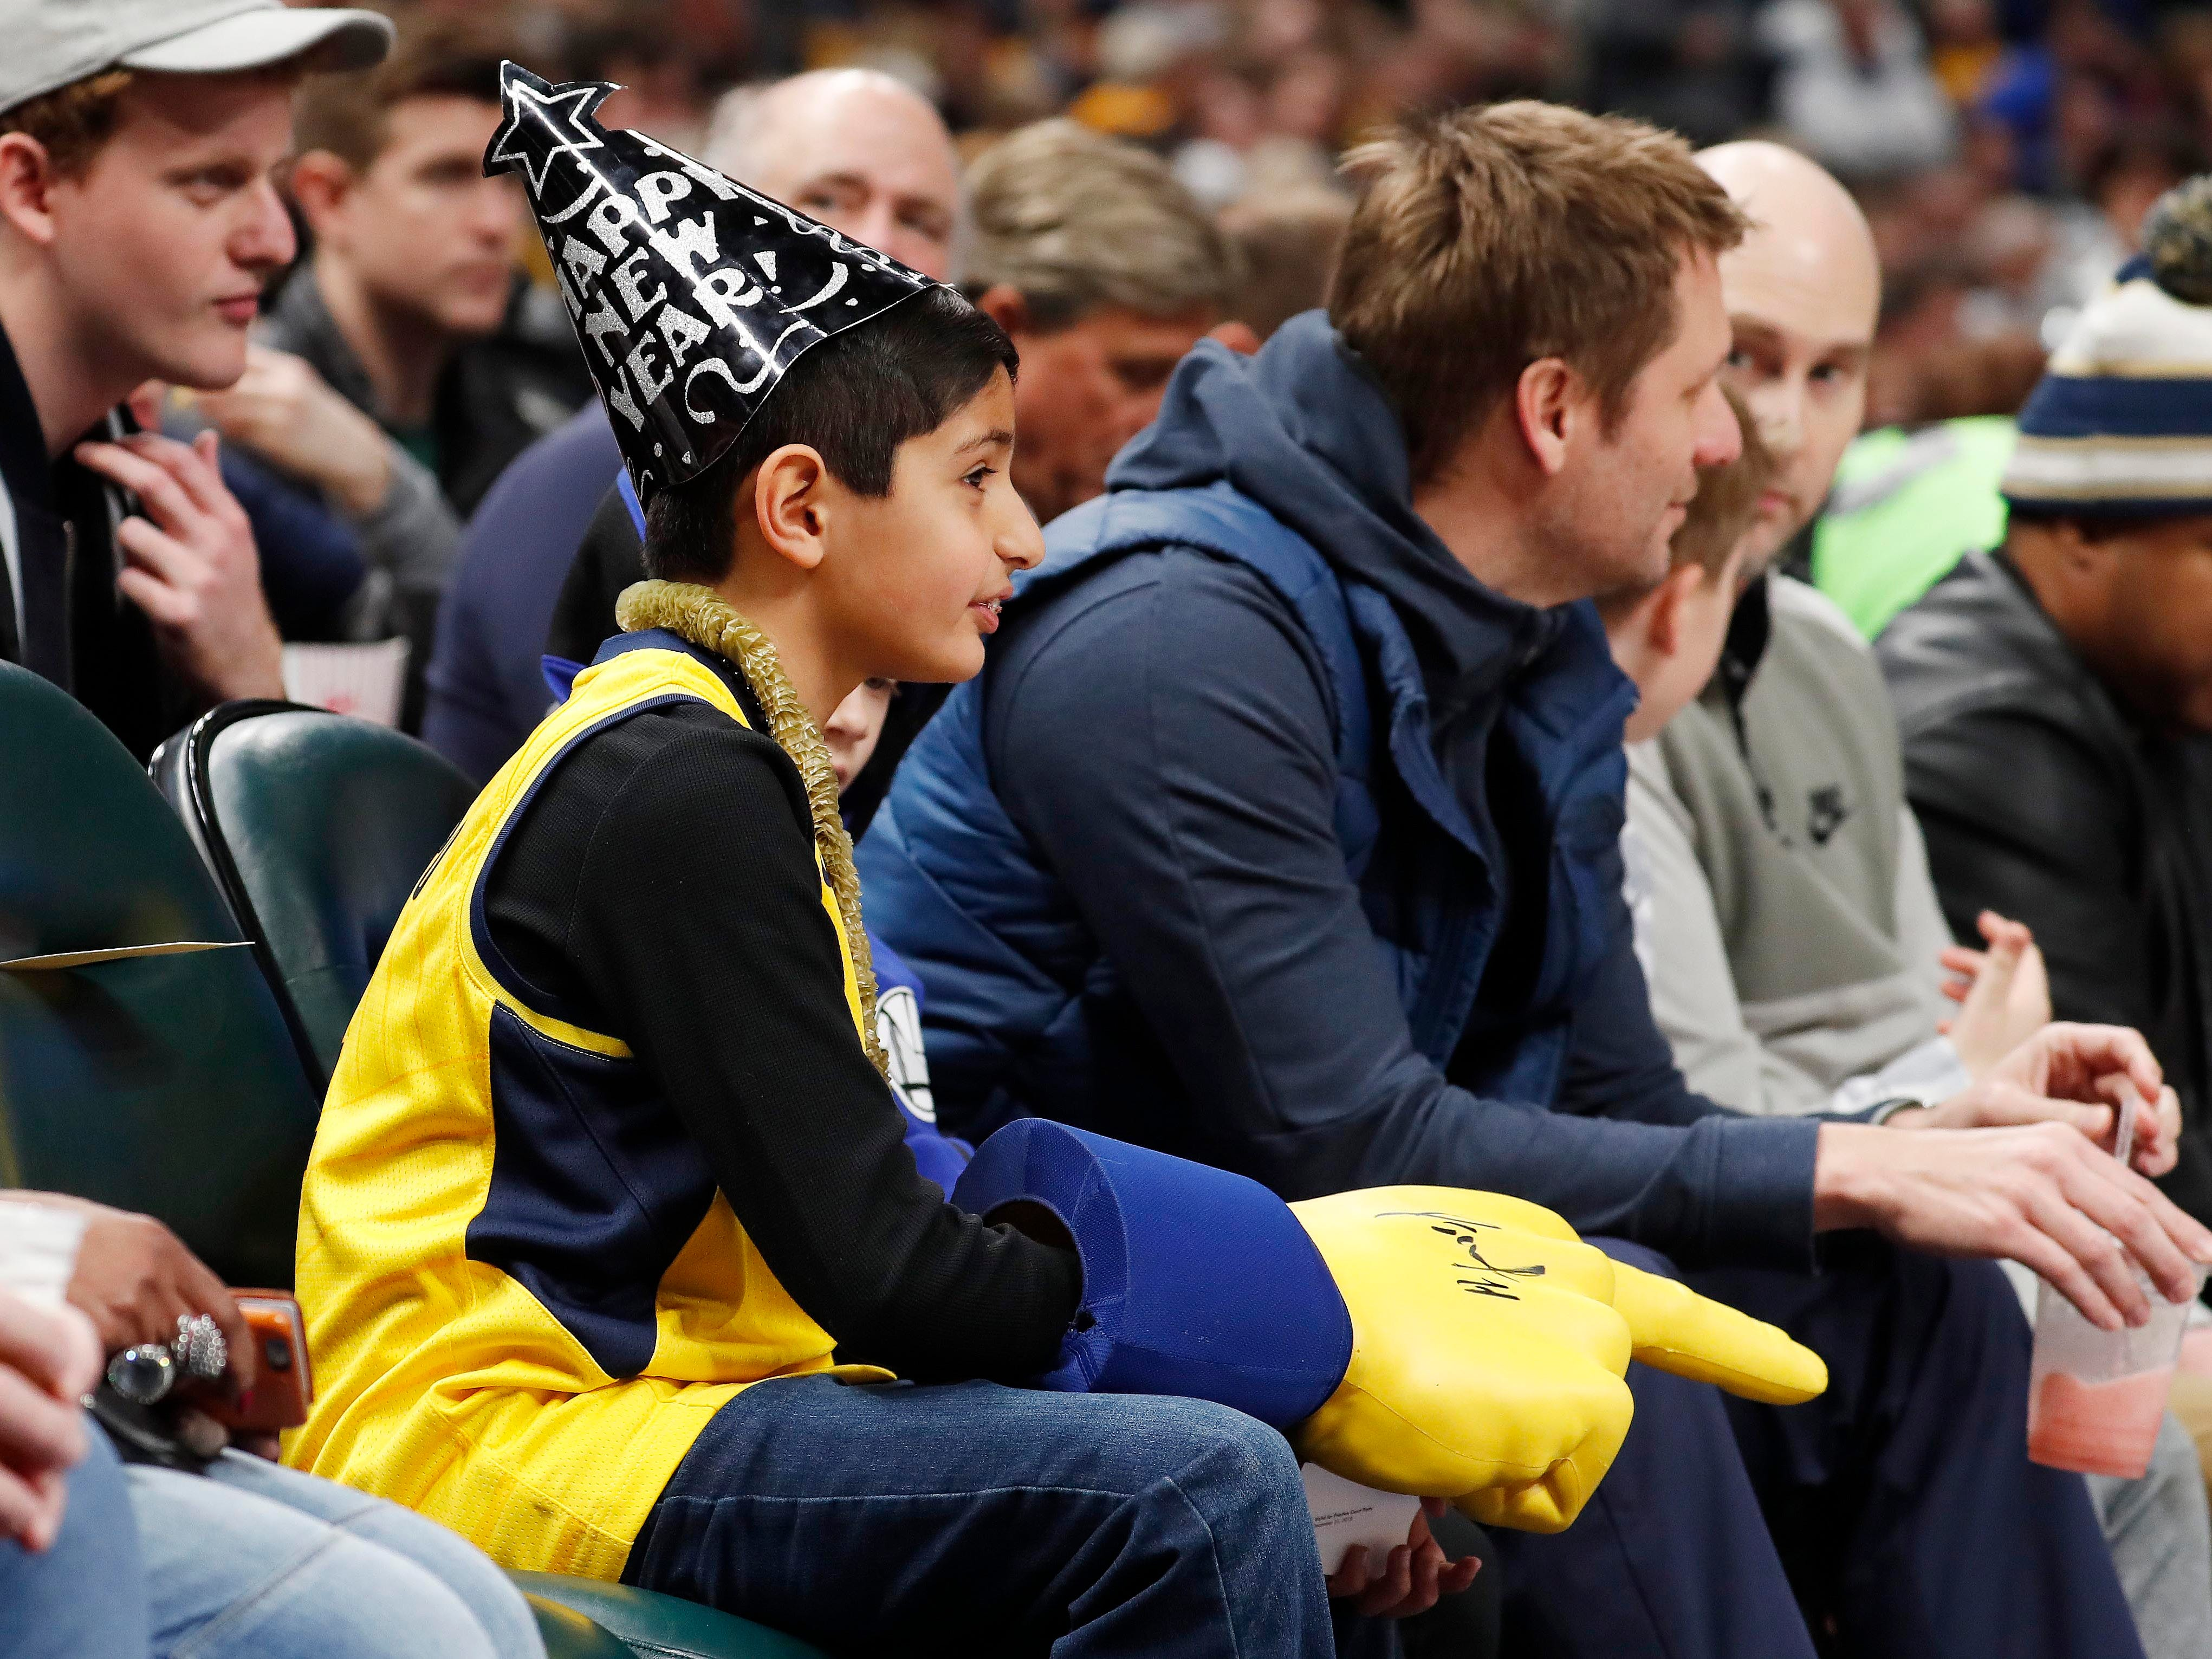 Dec. 31: An Indiana Pacers fan with a Happy New Year hat watches the game against the Atlanta Hawks at Bankers Life Fieldhouse.